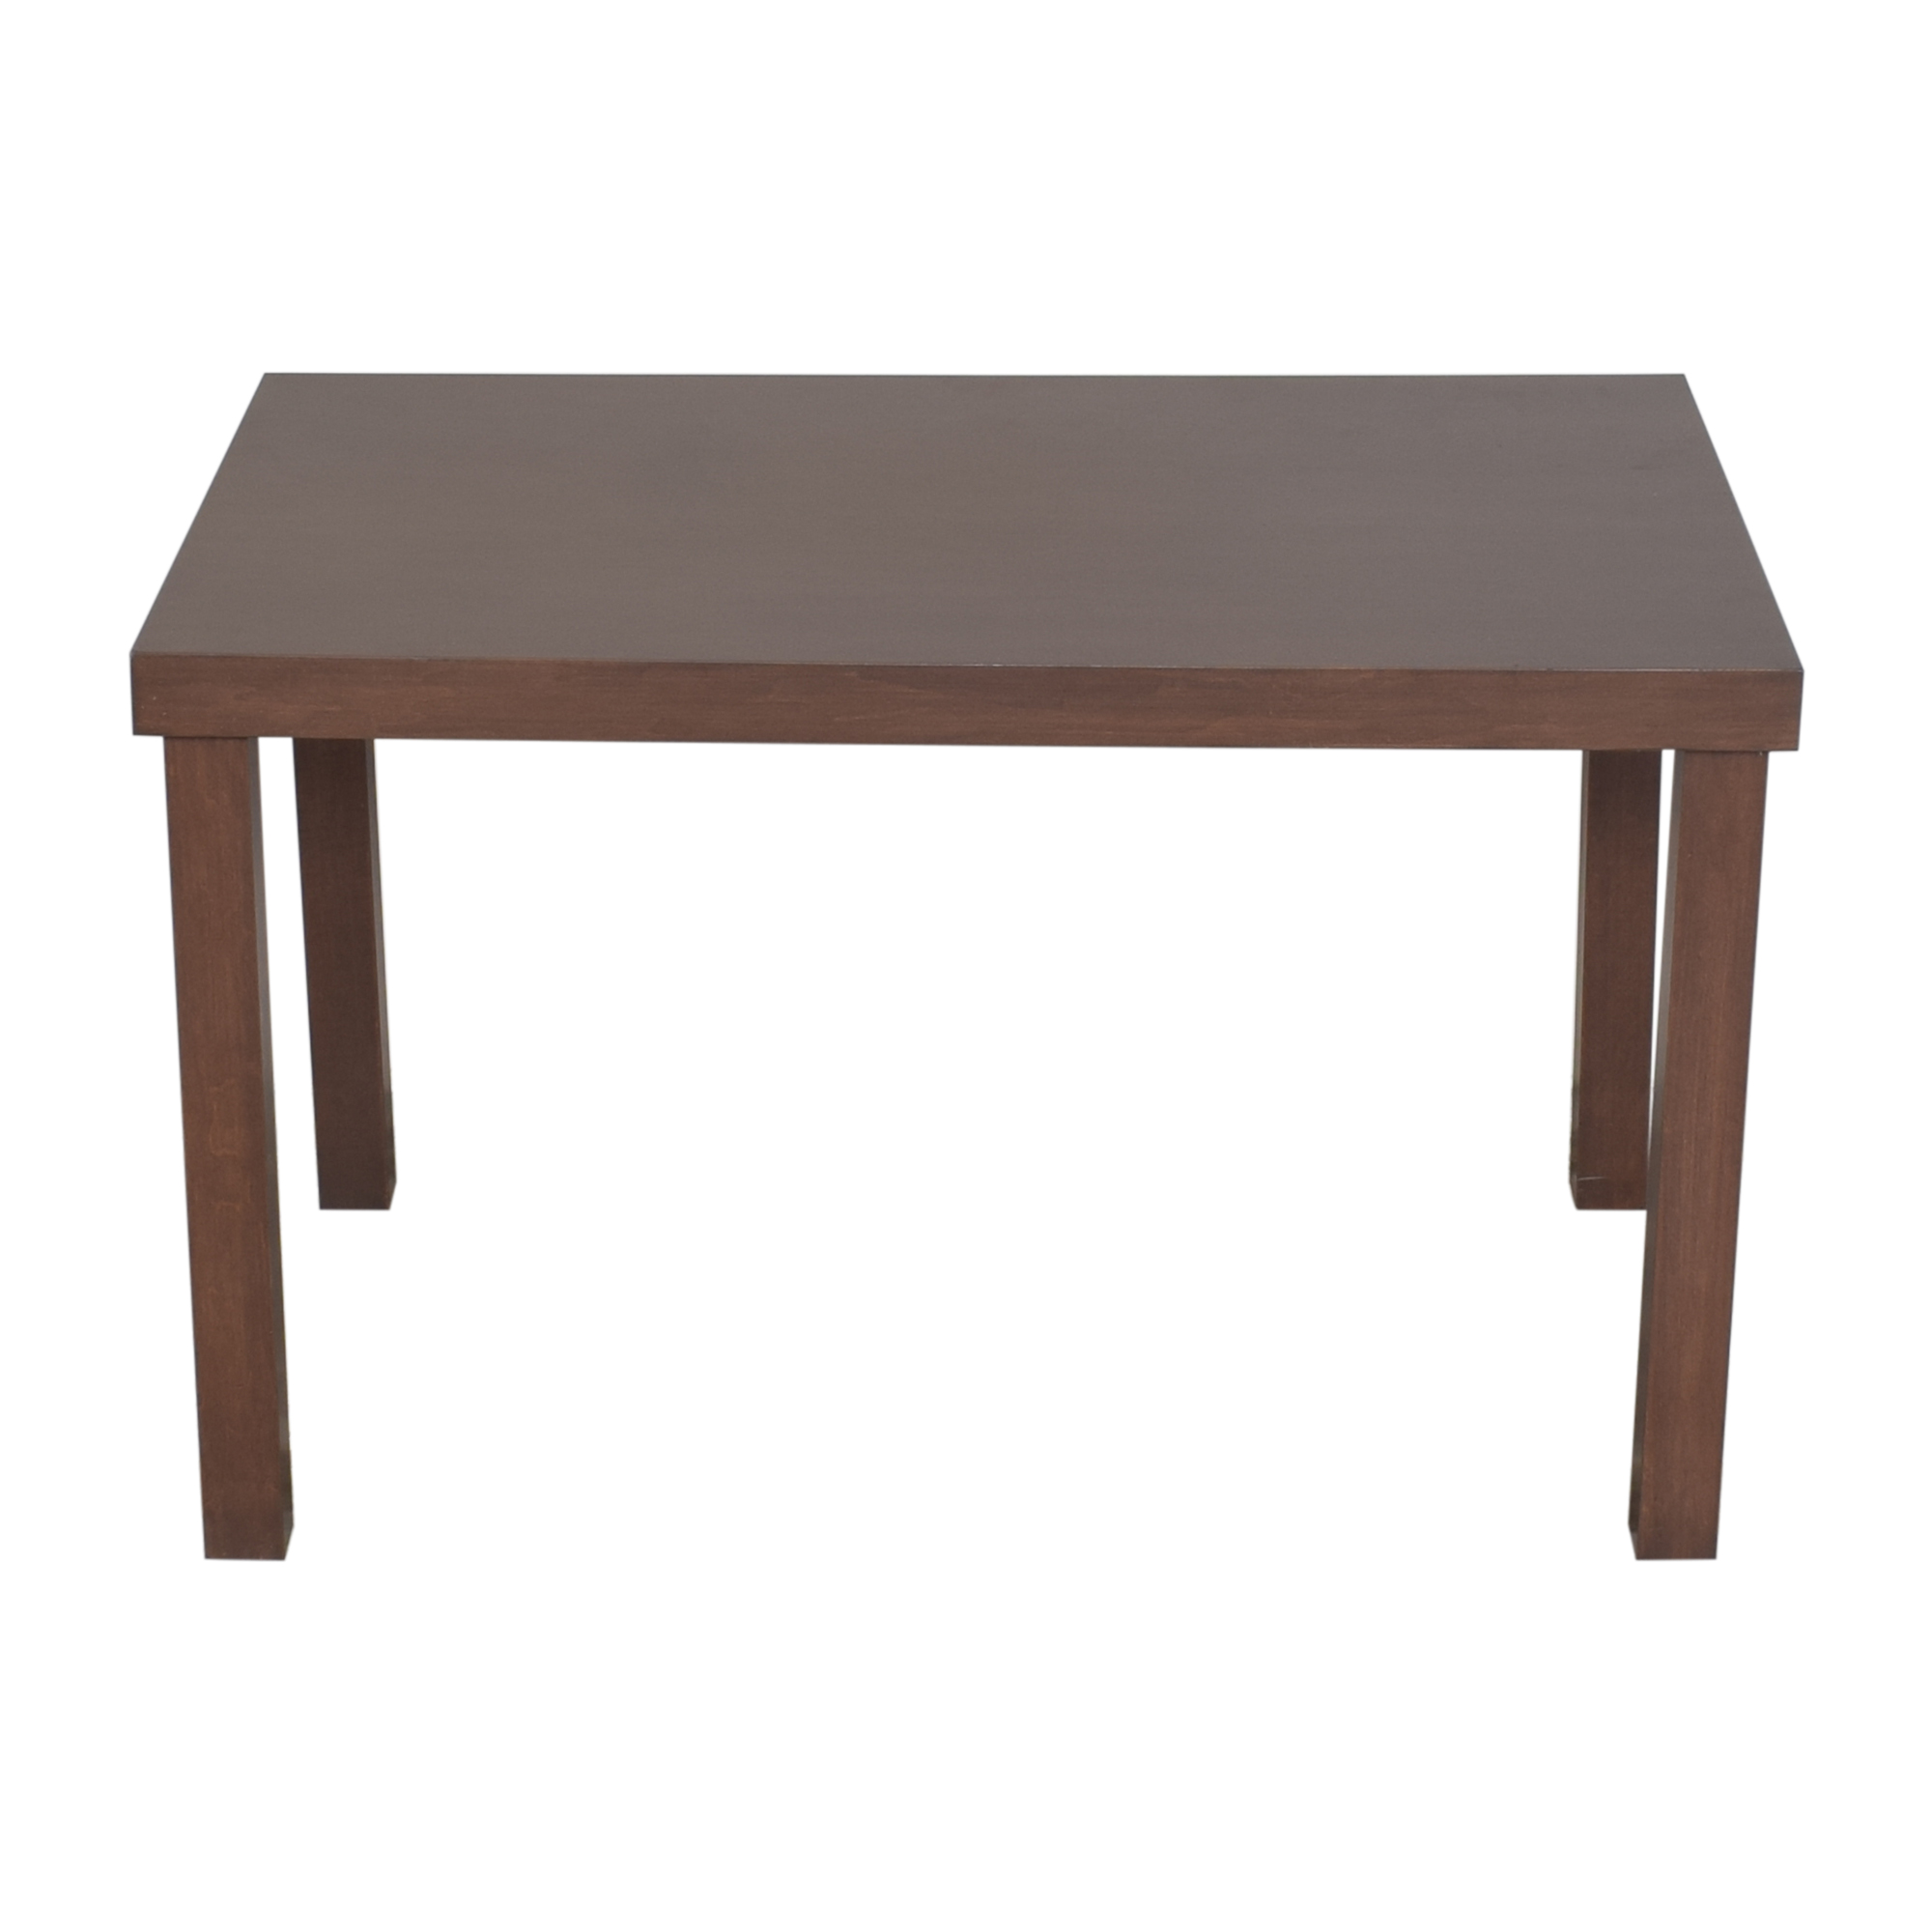 Parsons-Style Dining Table brown